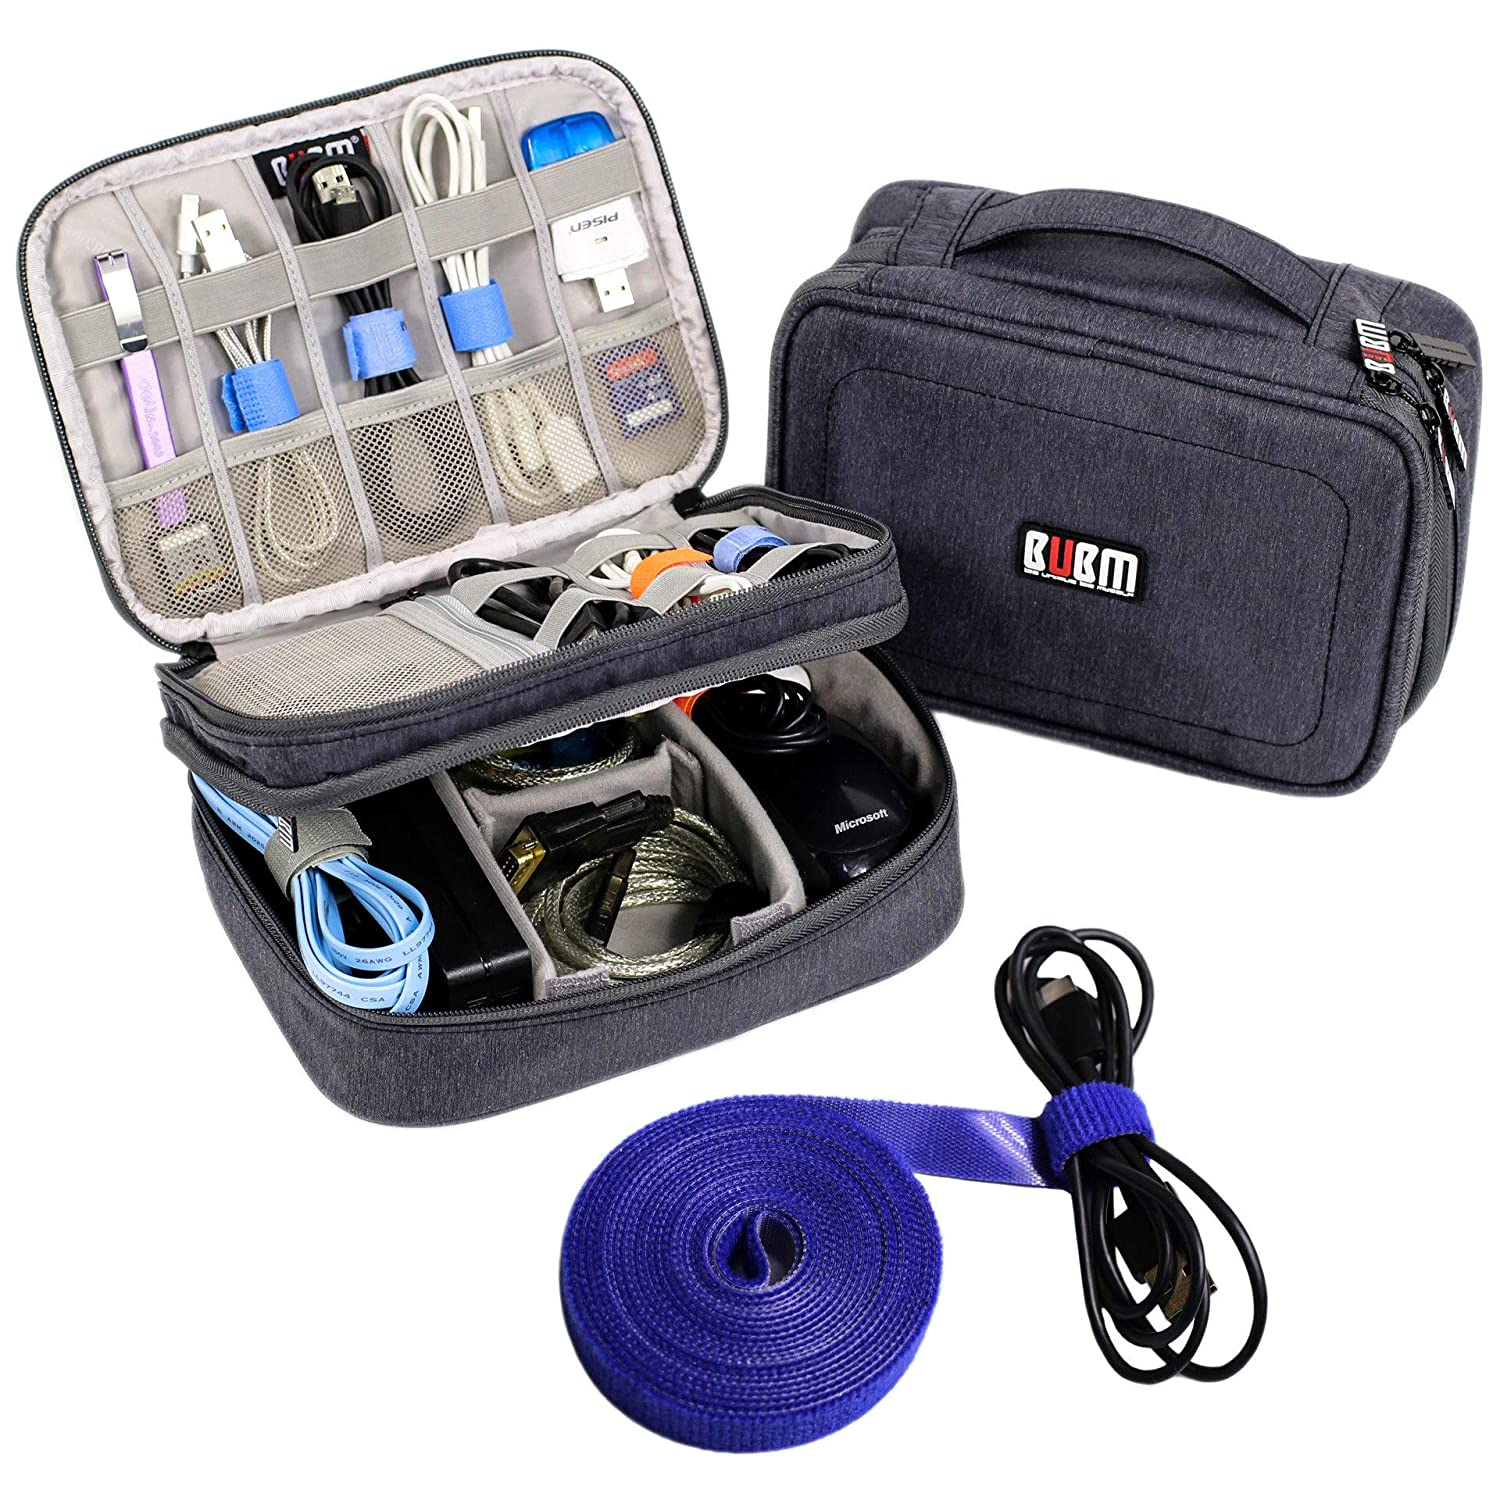 Electronics Organizer Travel Cable Cord Bag Accessories Gadget Gear Storage Cases  Dark Gray